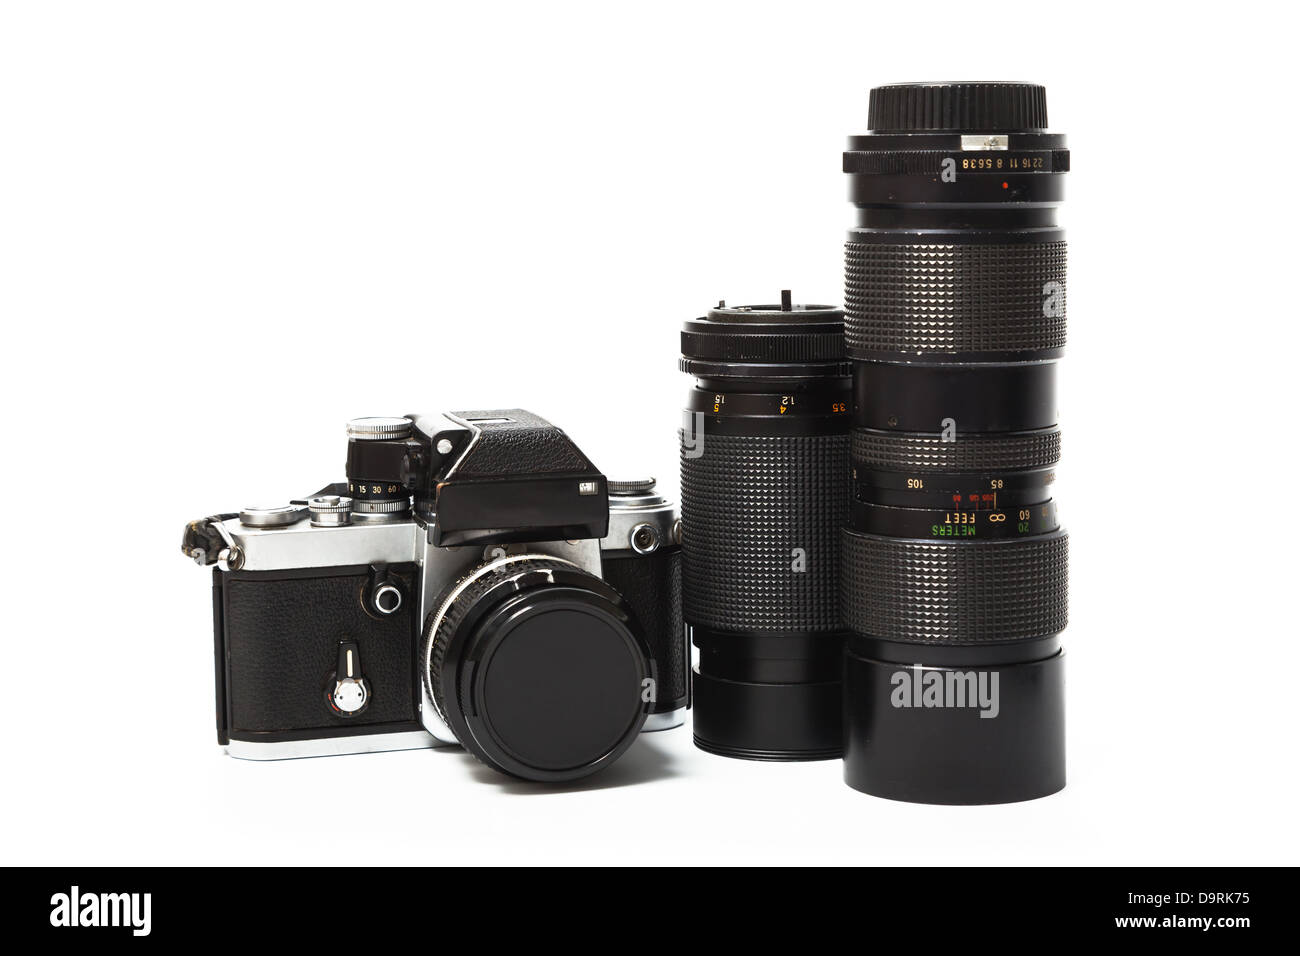 Old camera and lens isolated on white background - Stock Image